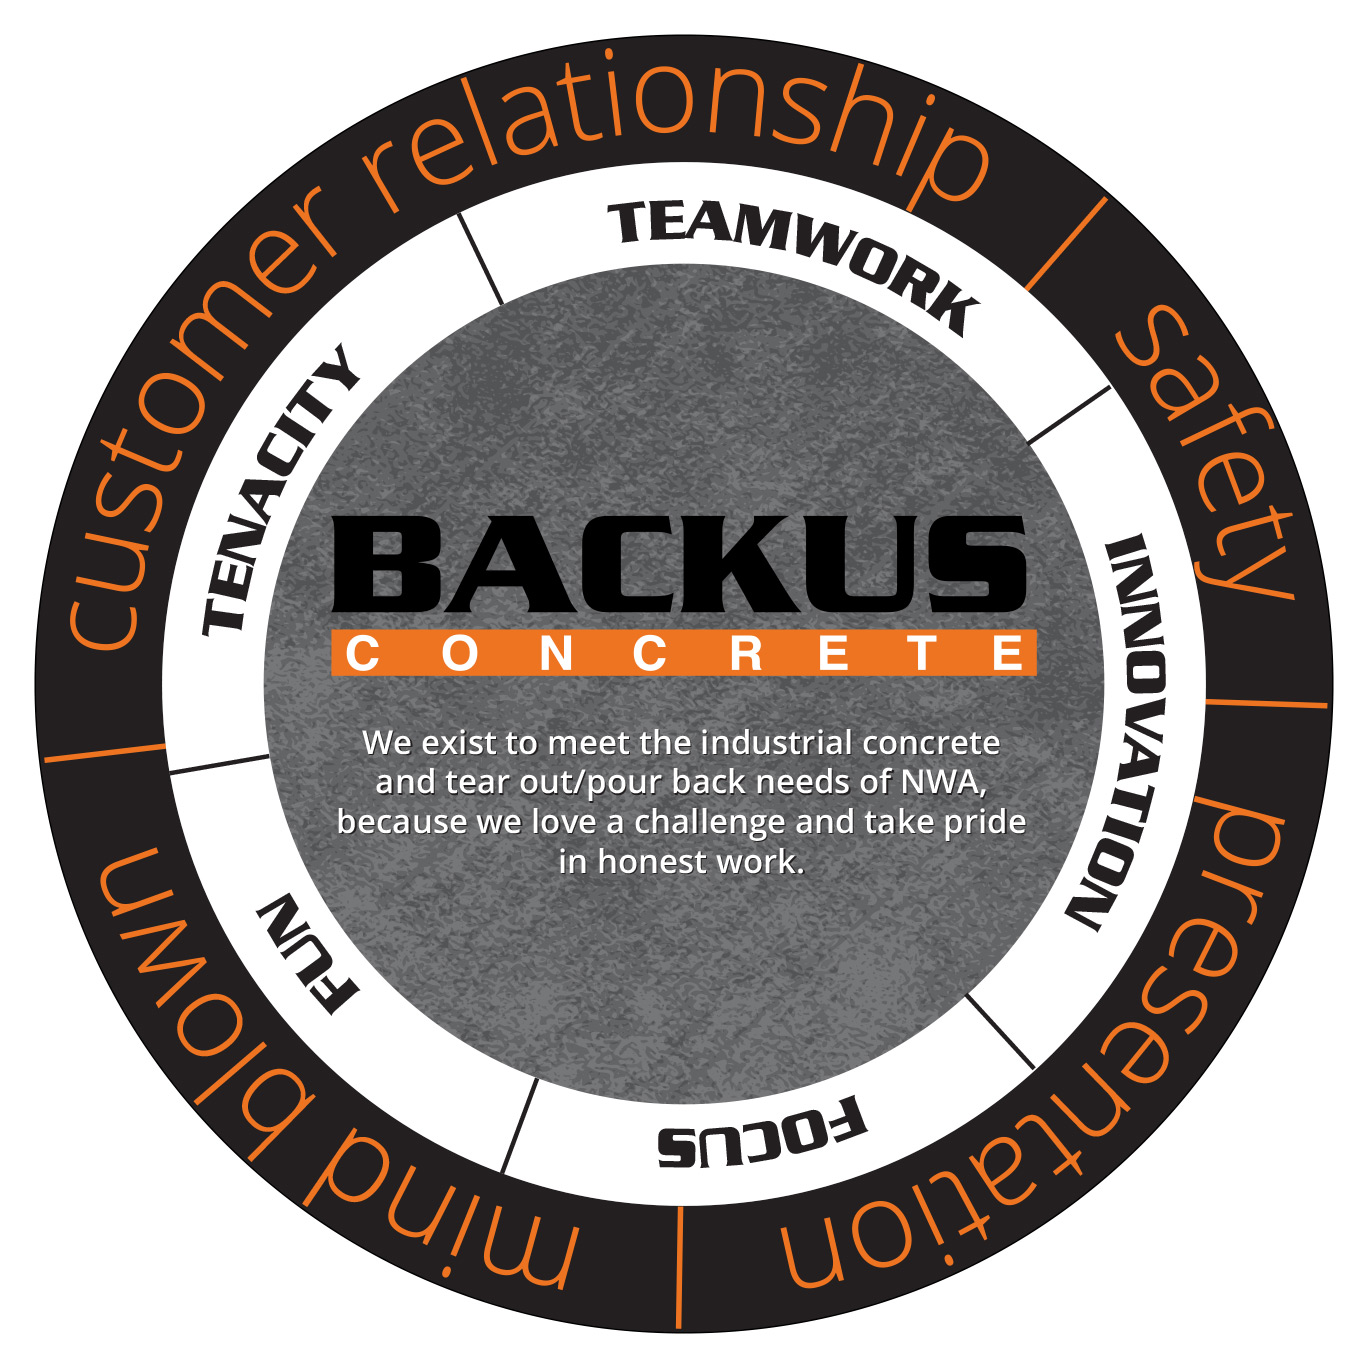 Backus Concrete Quality Concrete Servicing Northwest Ar